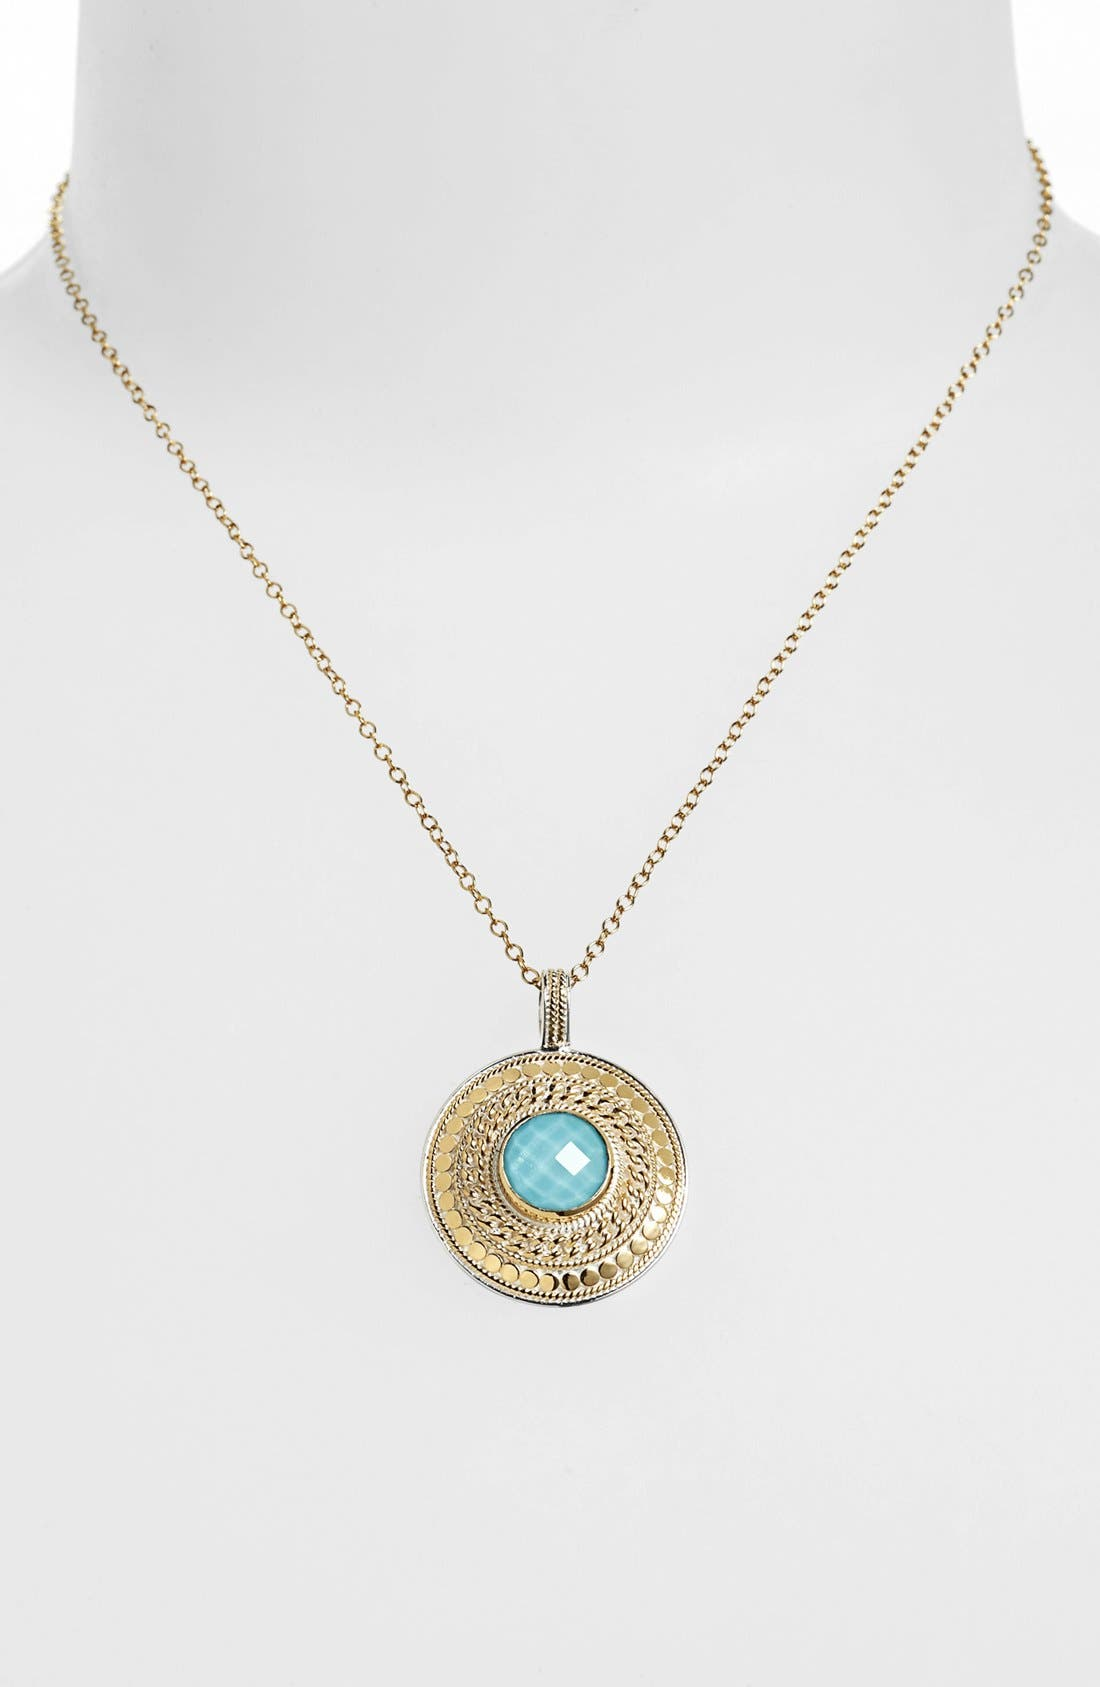 Main Image - Anna Beck 'Gili' Wire Rimmed Pendant Necklace